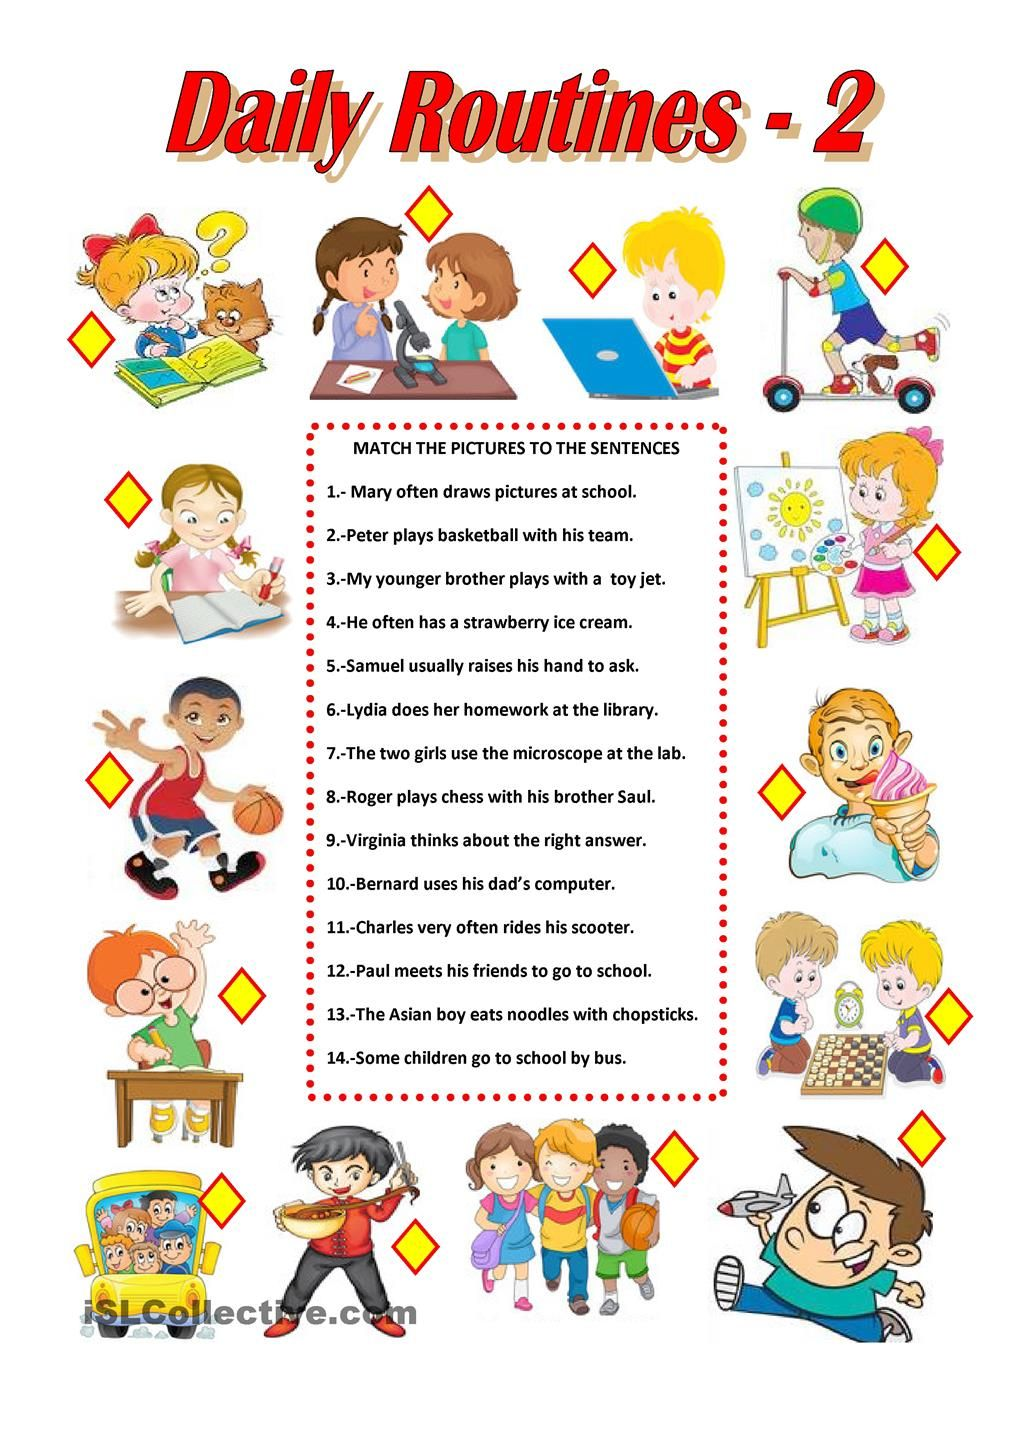 Worksheets Daily Schedule Worksheet daily routines 2 worksheet free esl printable worksheets made by teachers